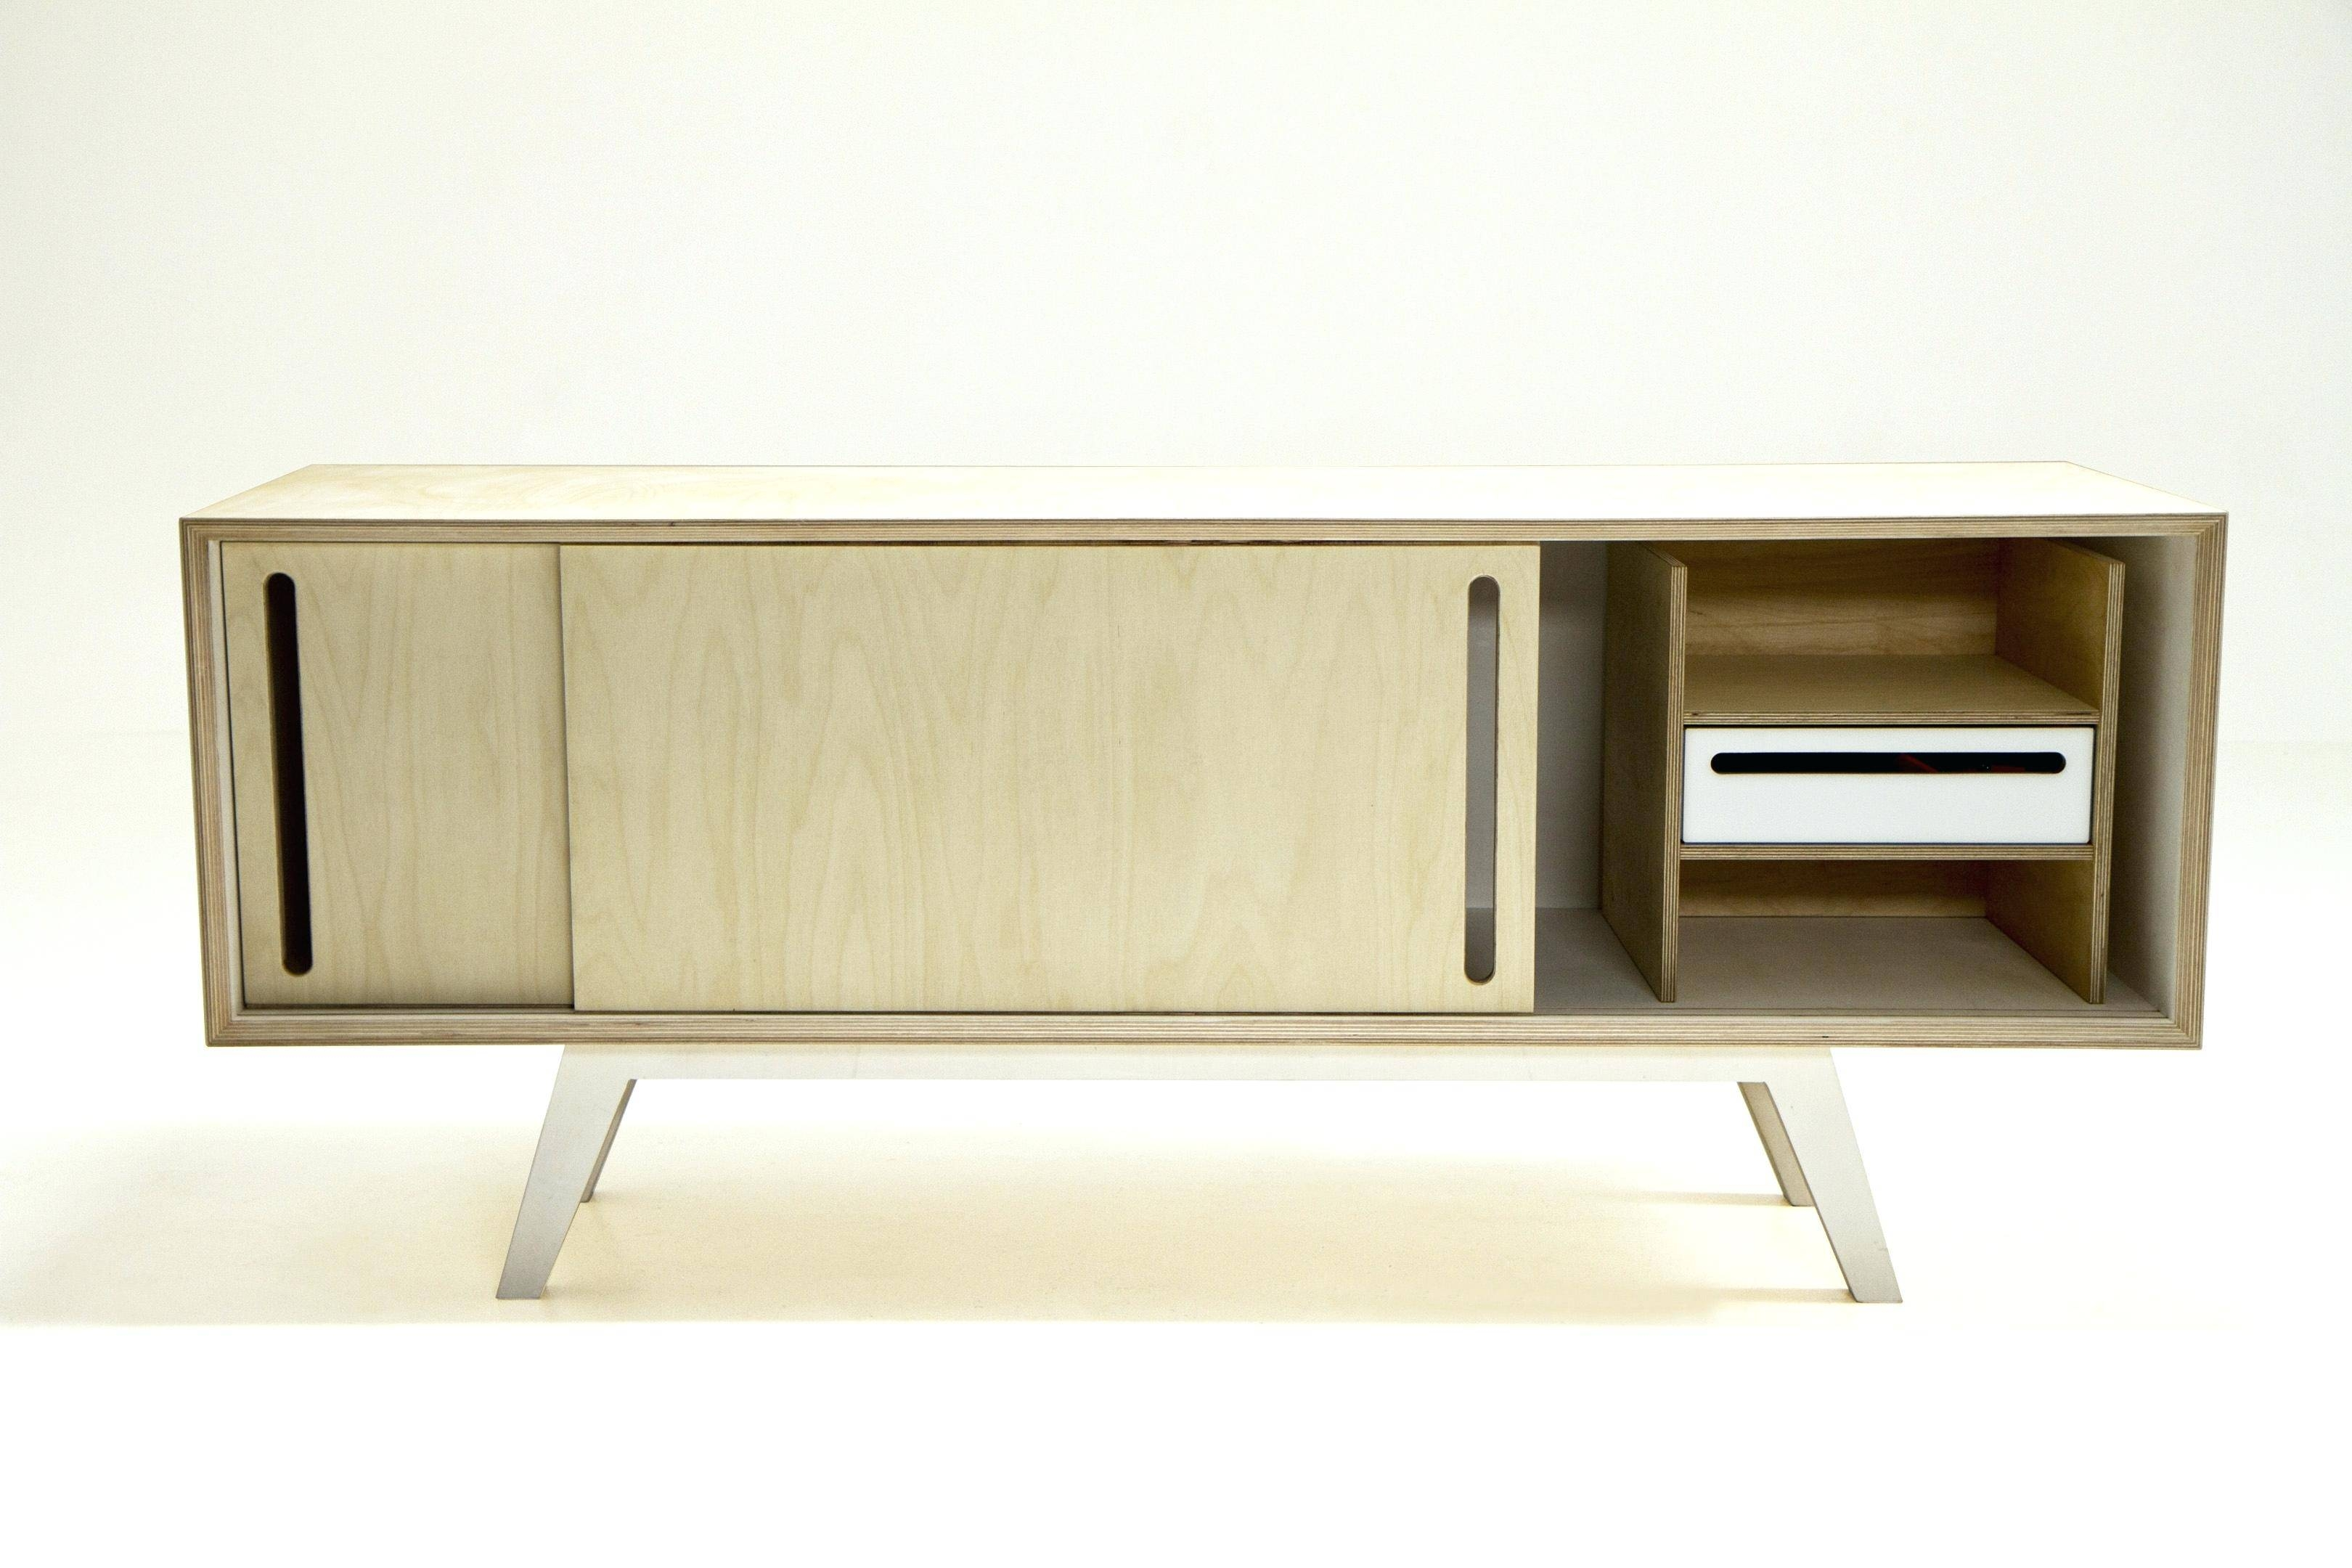 Design Sideboard Cool Amazing Nice Wonderful Awesome With Modern for Cool Sideboards (Image 3 of 15)